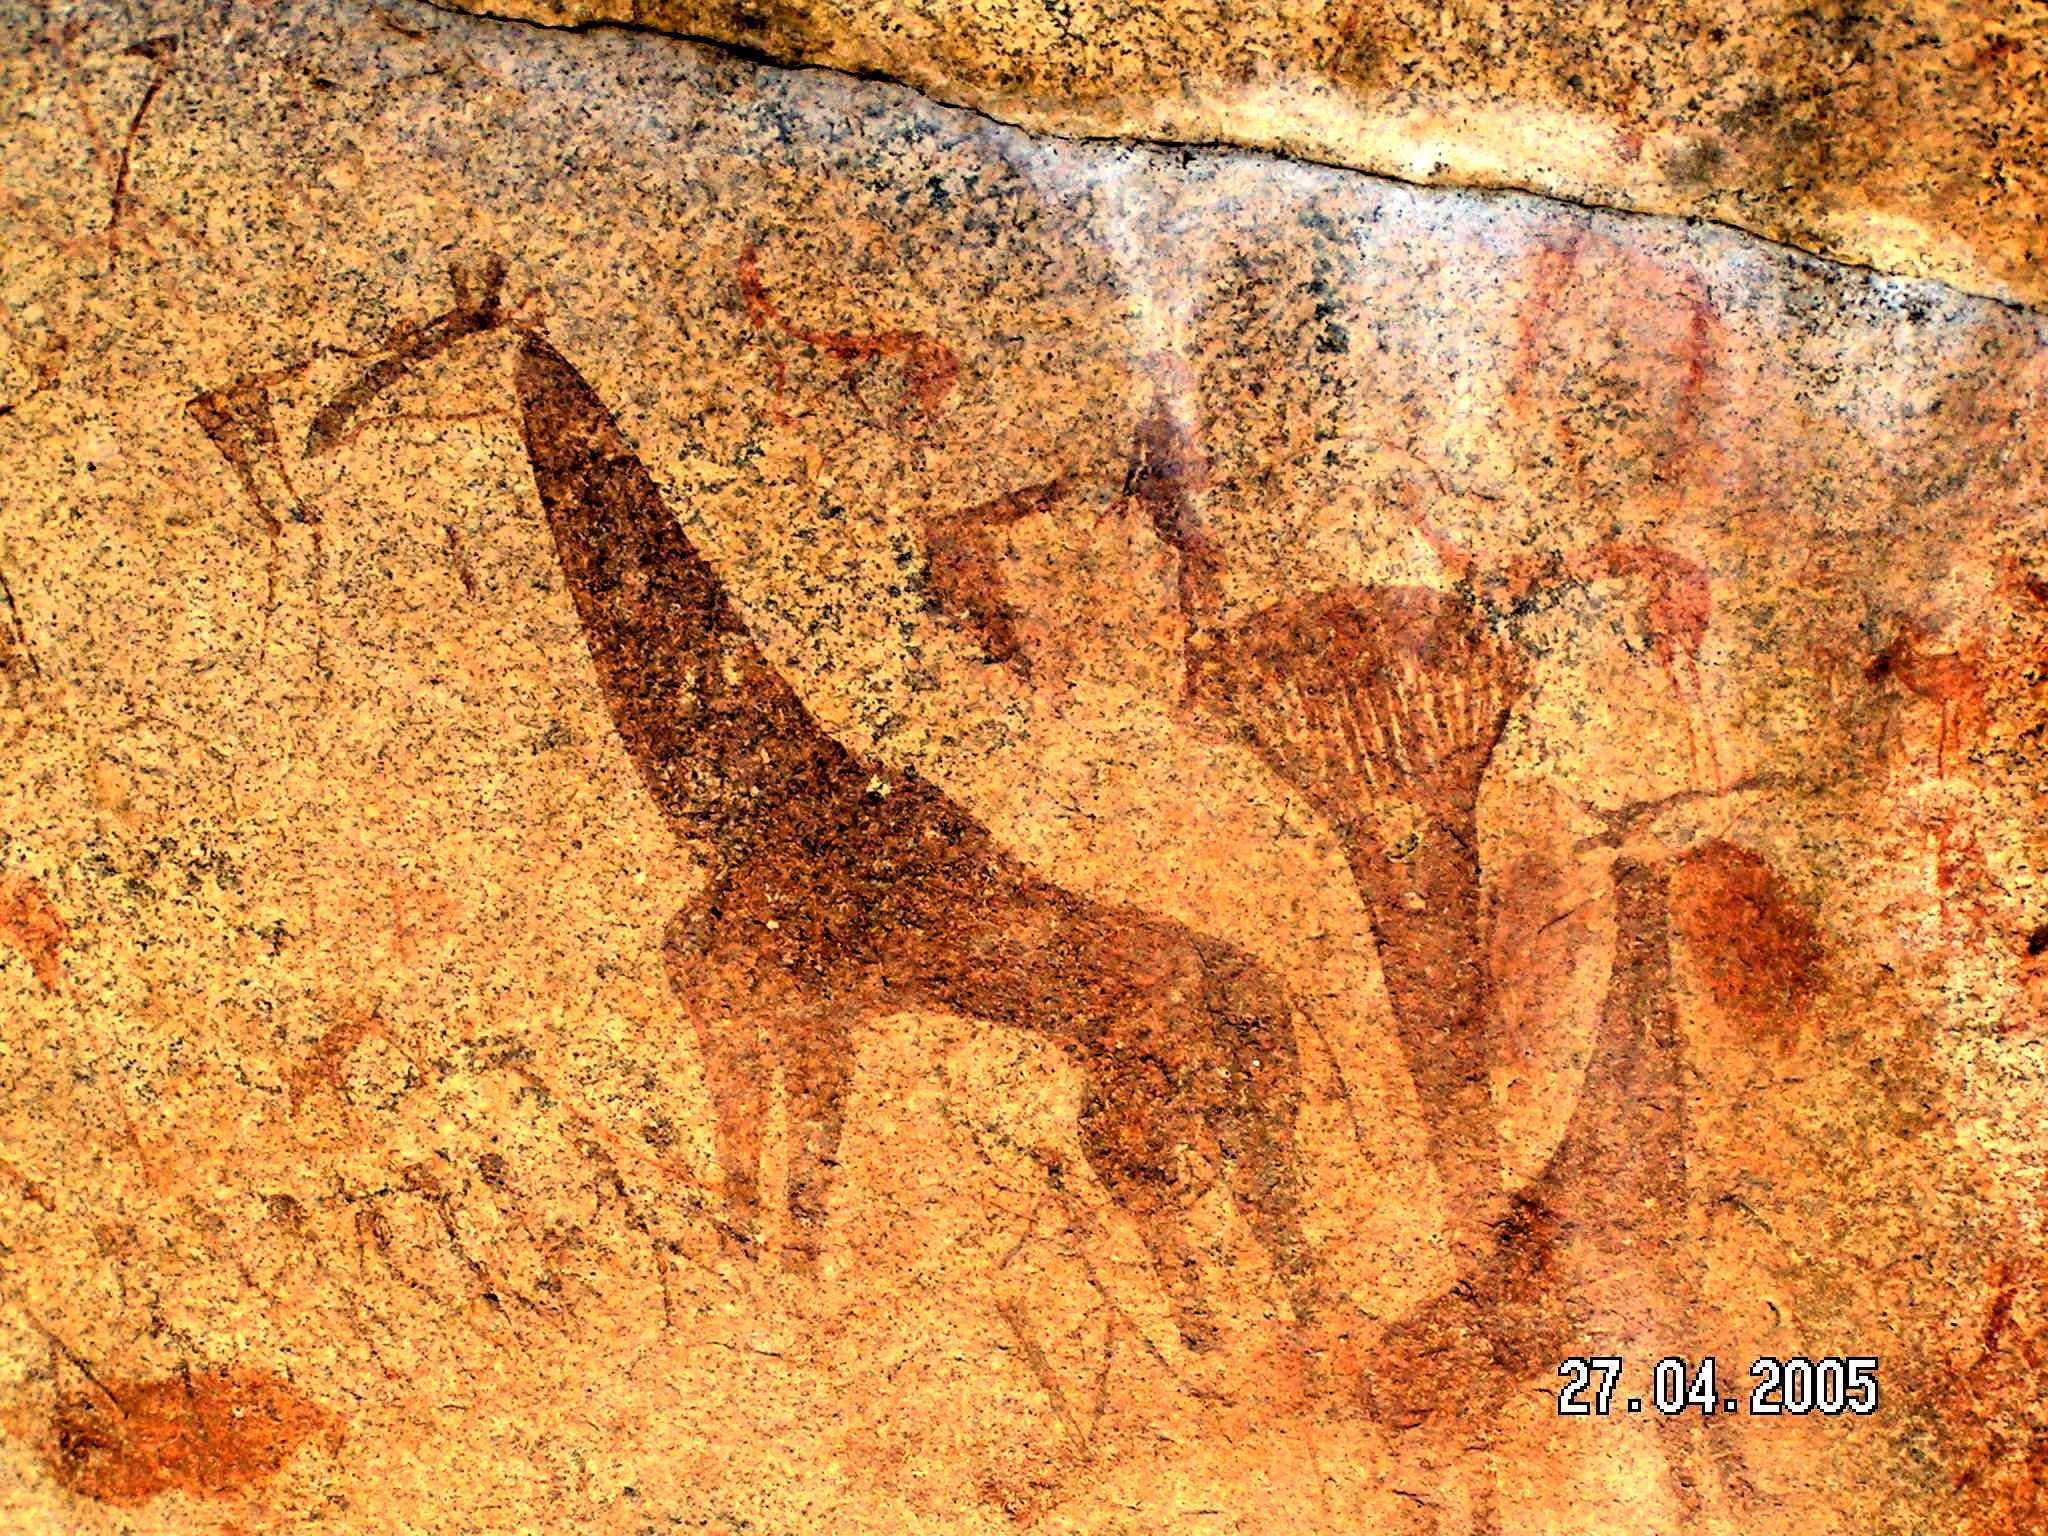 cave paintings in africa | Rock paintings from Namibia in Africa